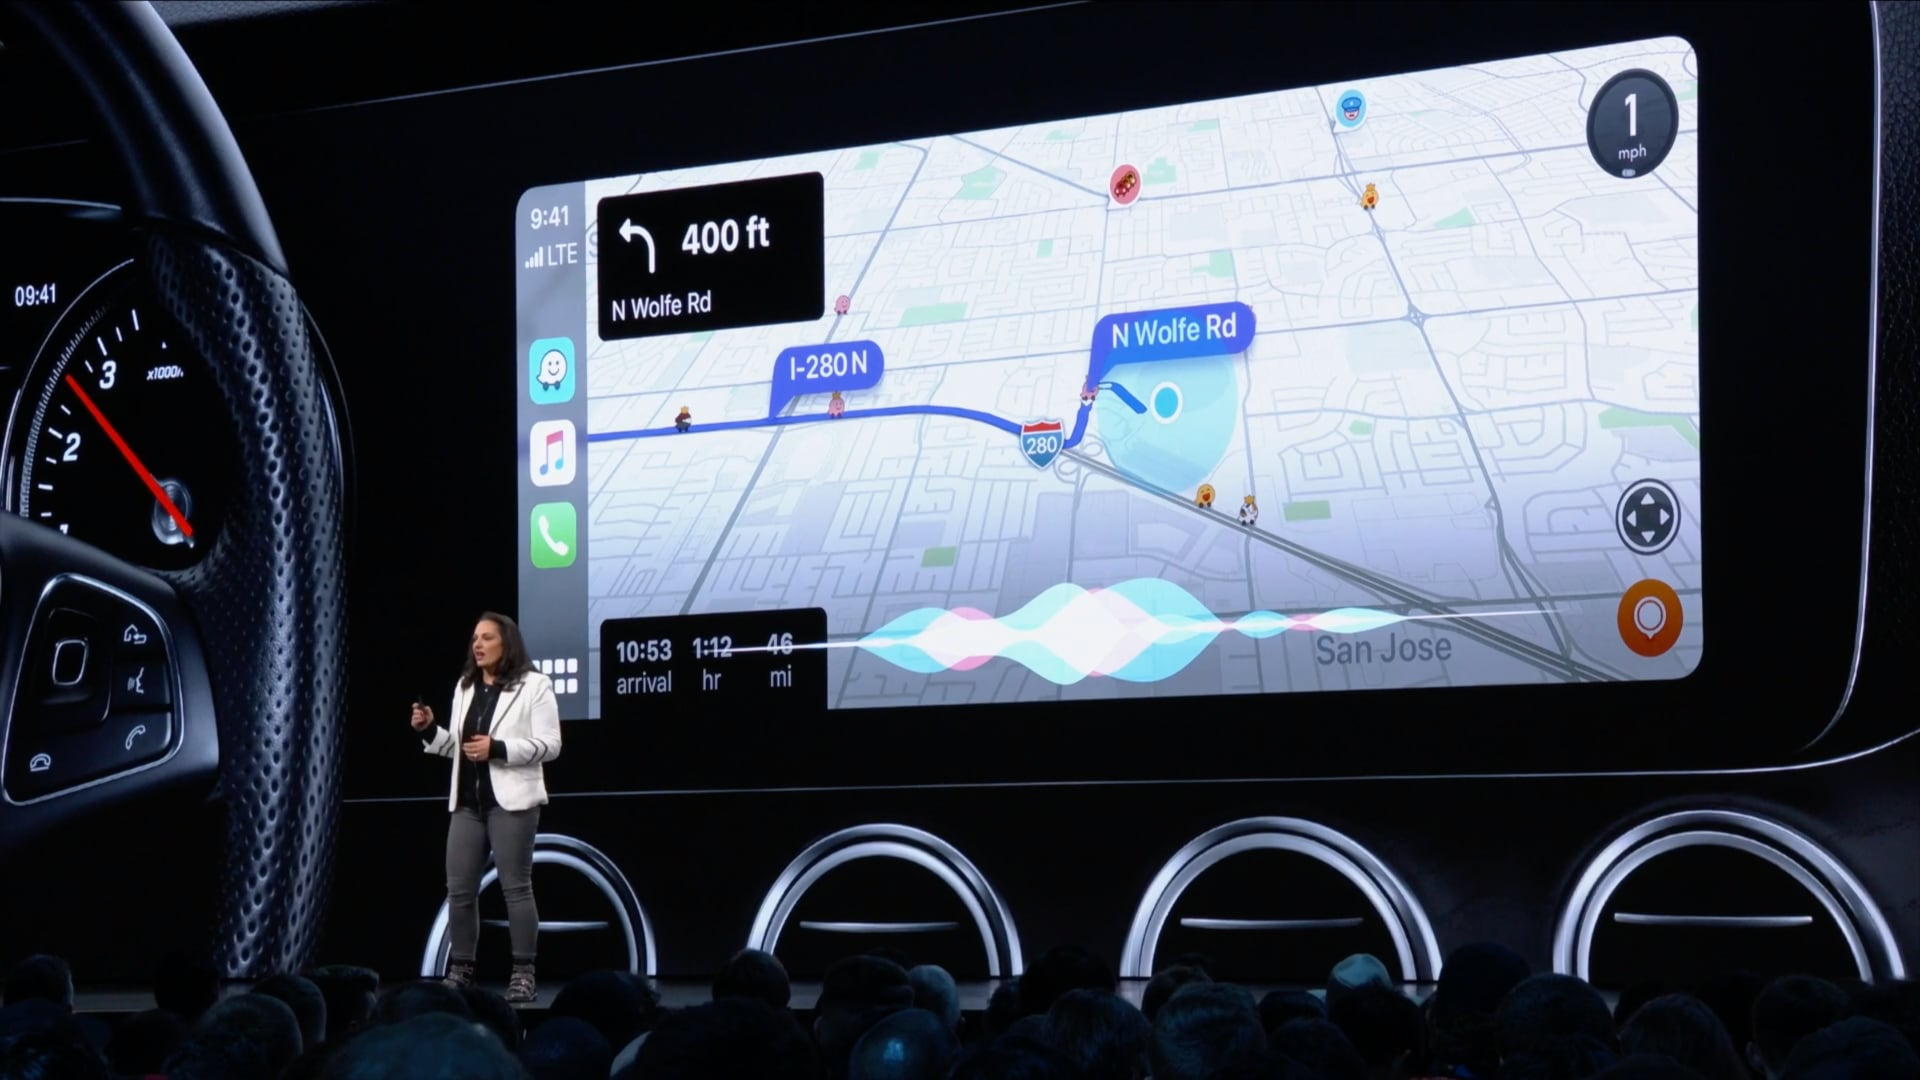 iOS 13's CarPlay features include Light theme, Dashboard